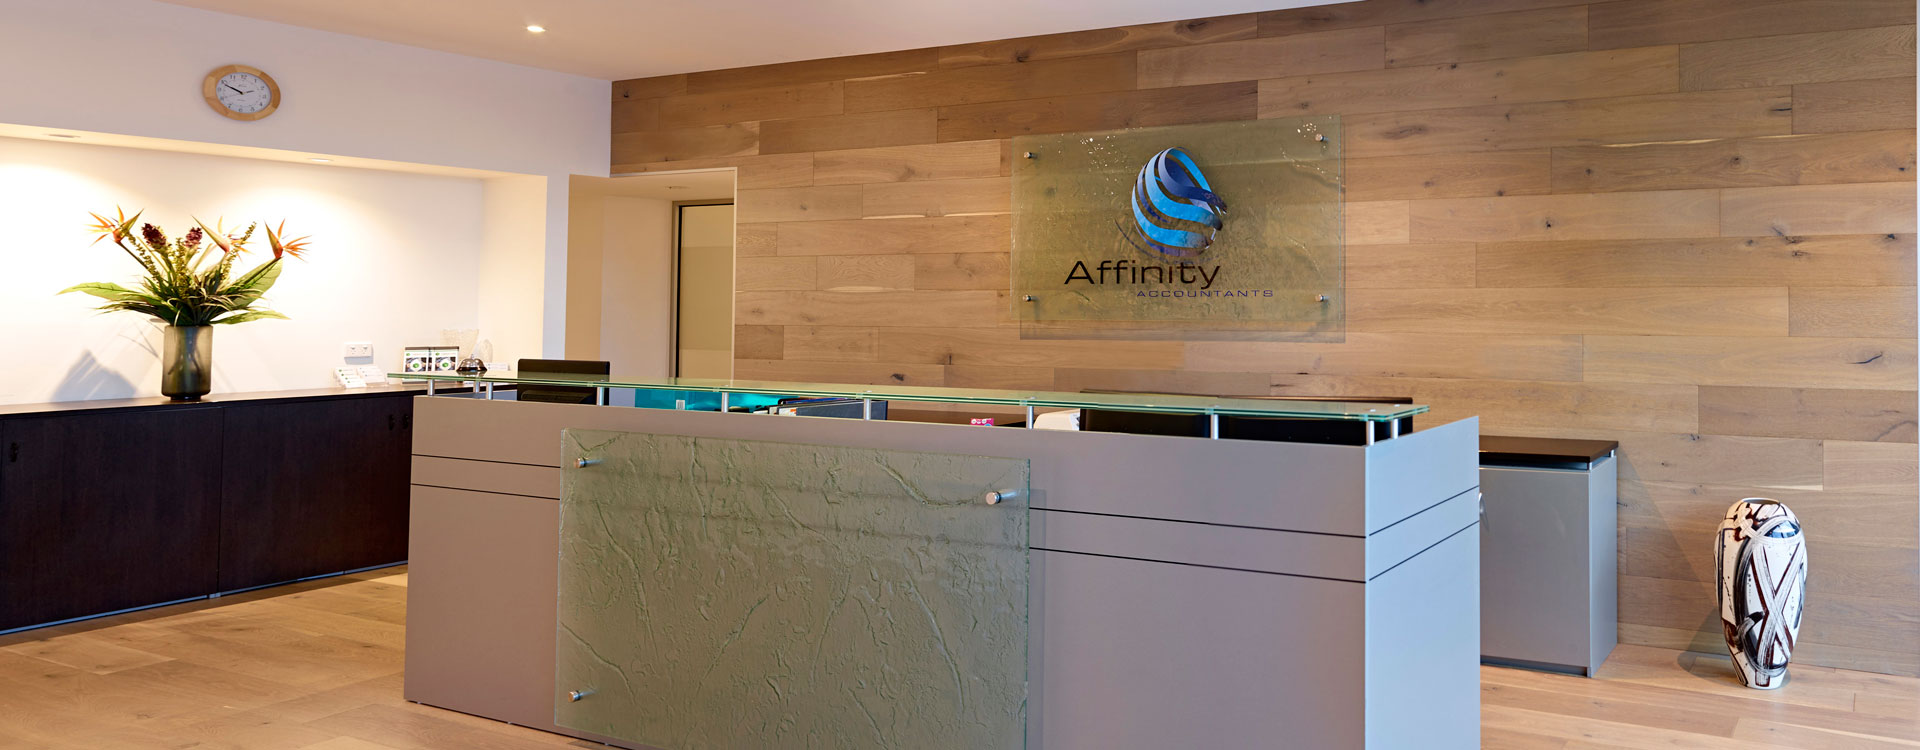 Affinity Accountants